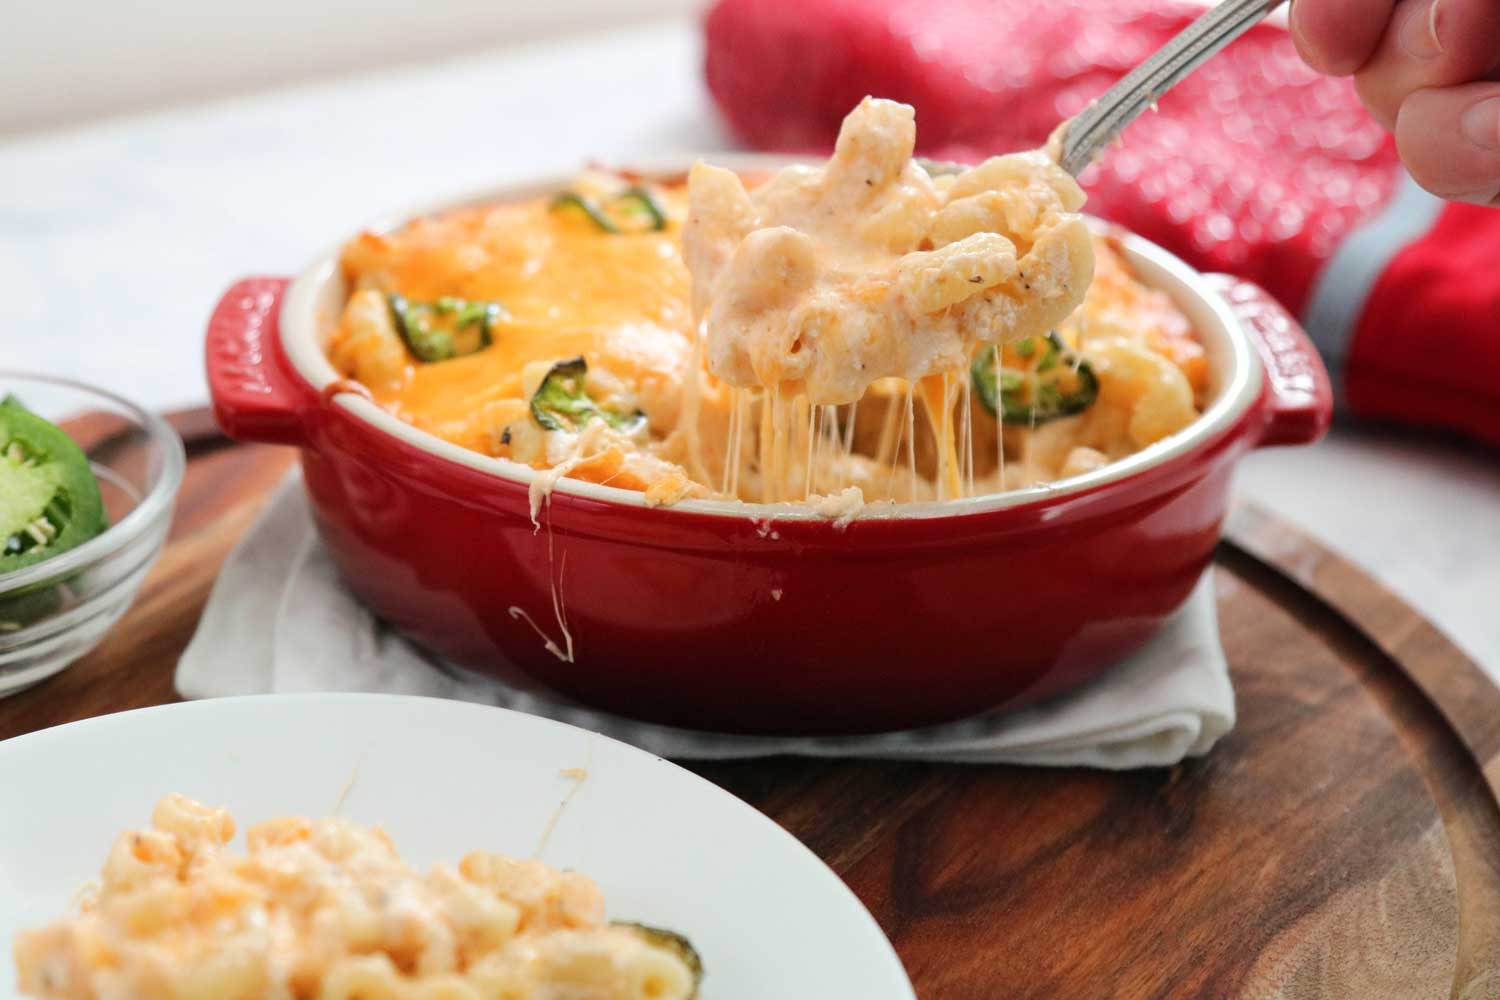 recipes-Spicy-Crab-Mac-and-Cheese-serving.jpg